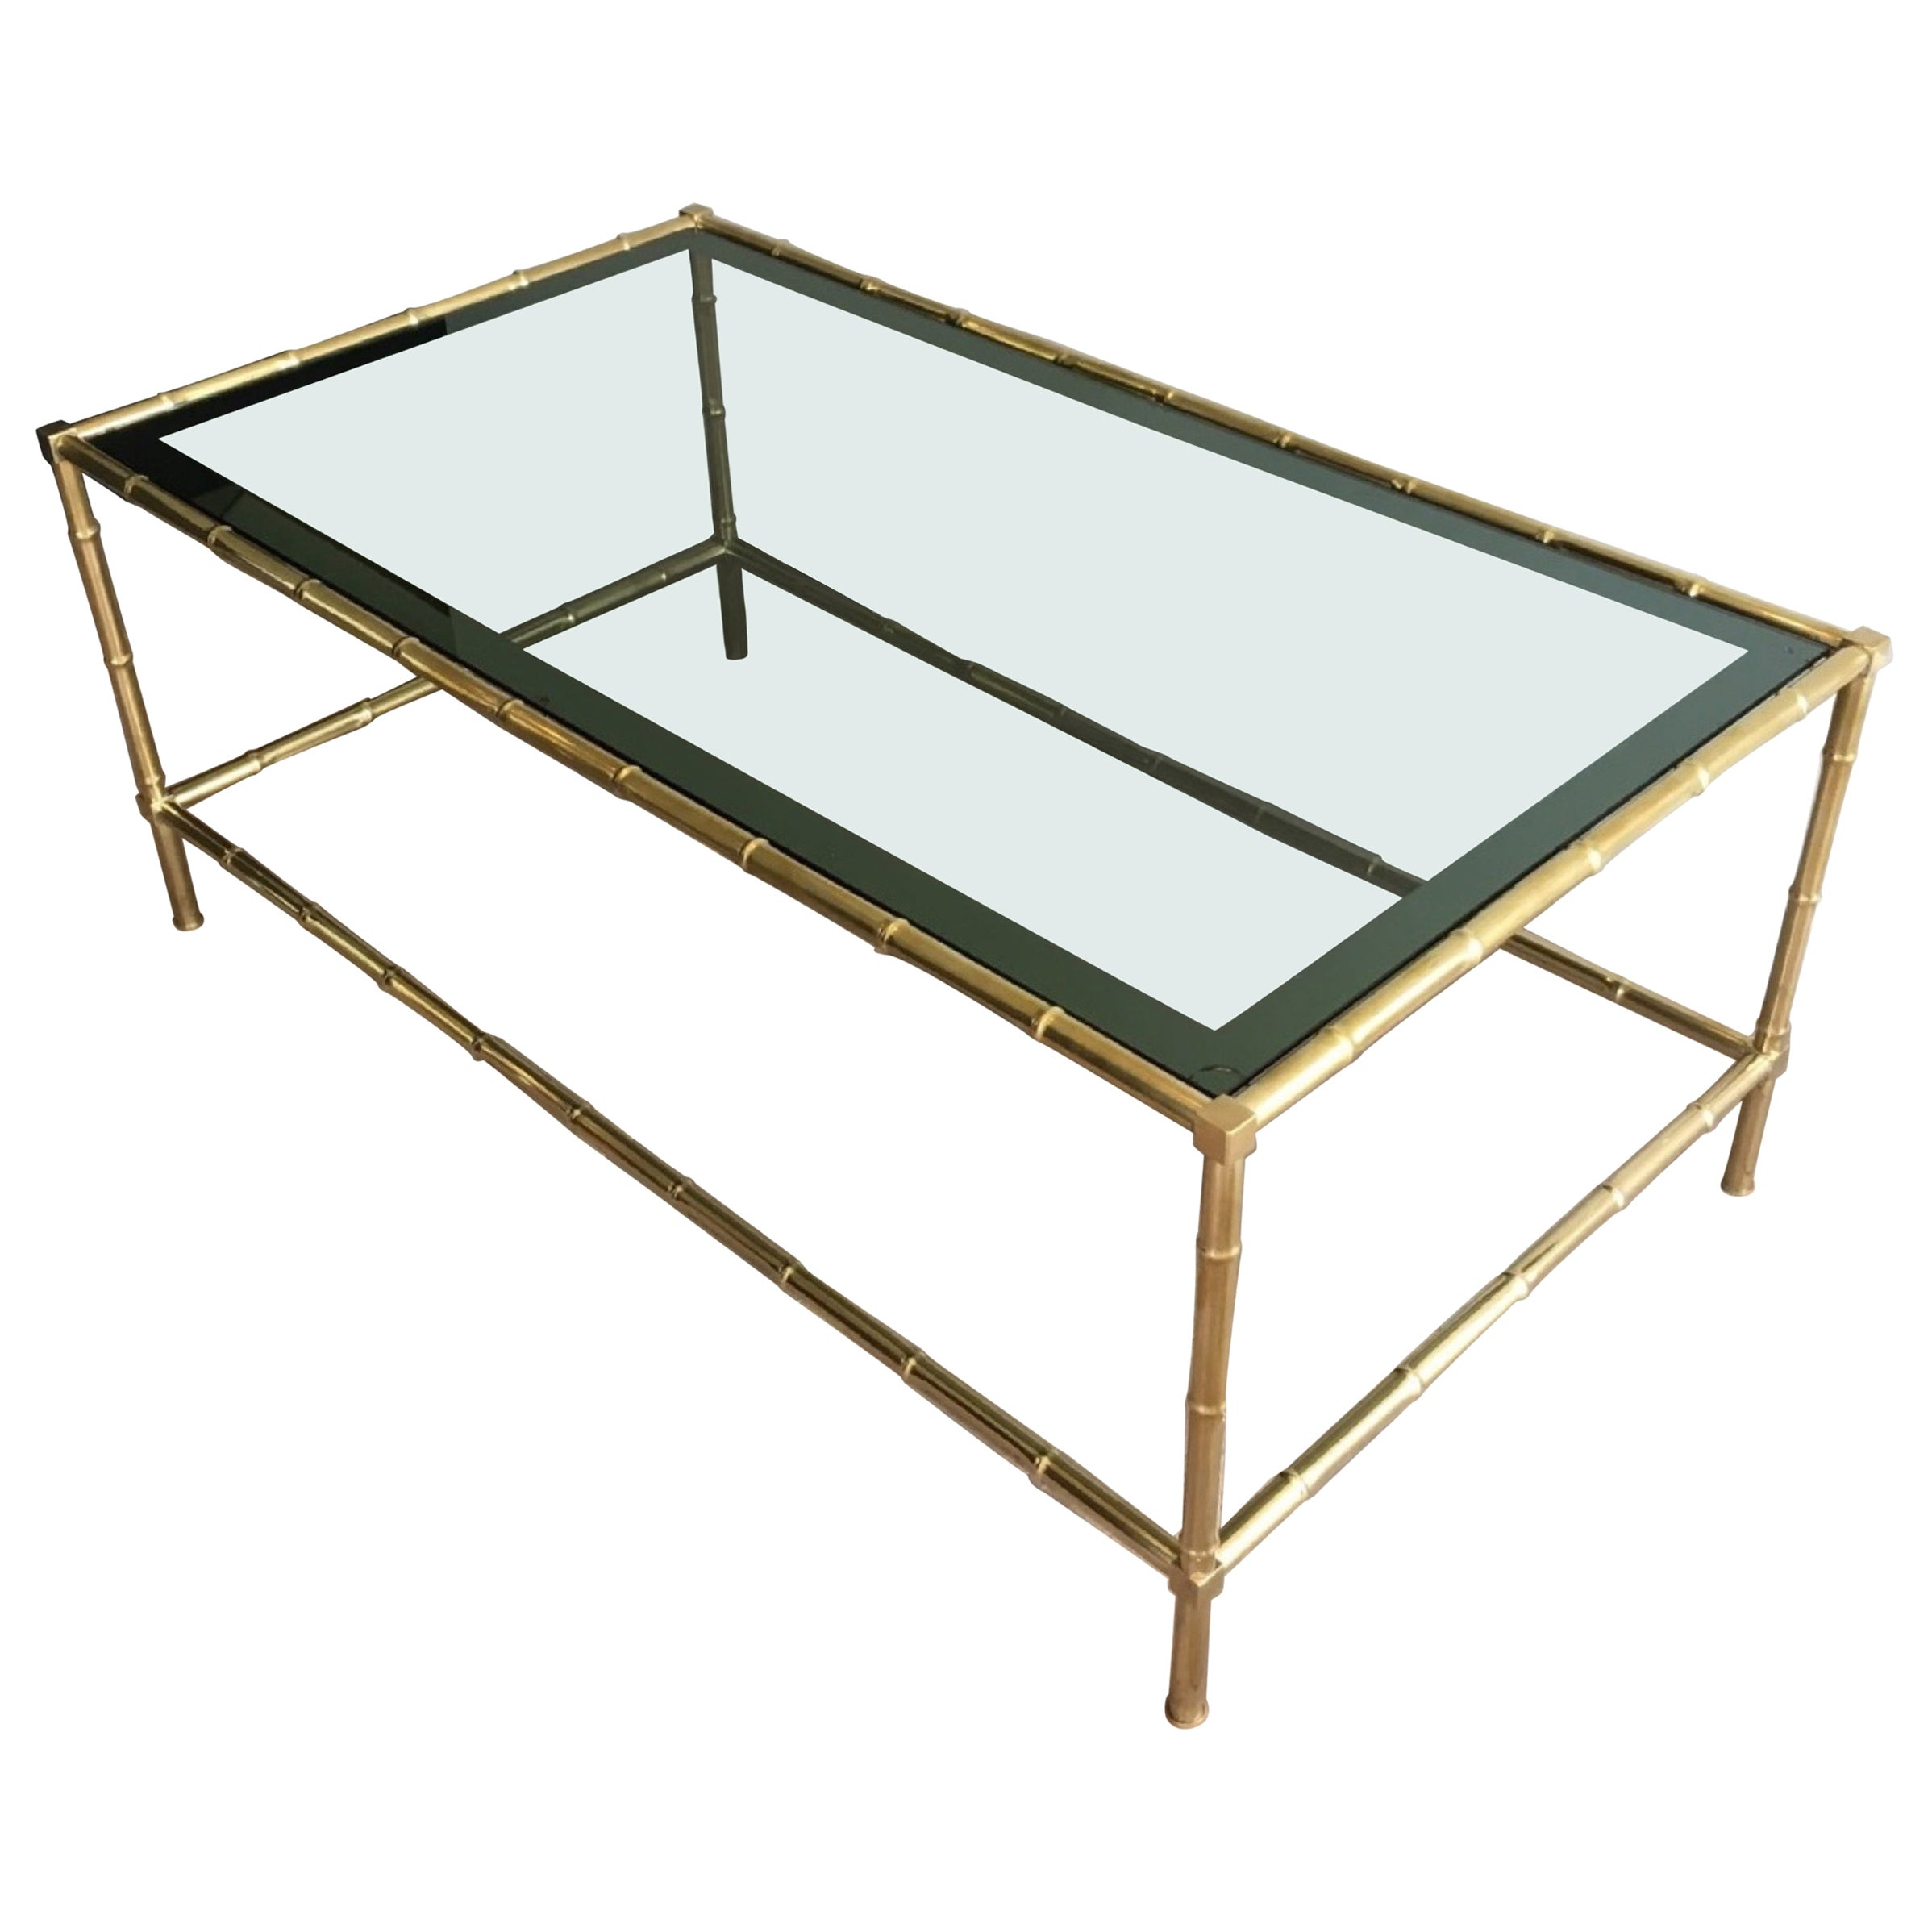 Faux-Bamboo Brass Coffee Table